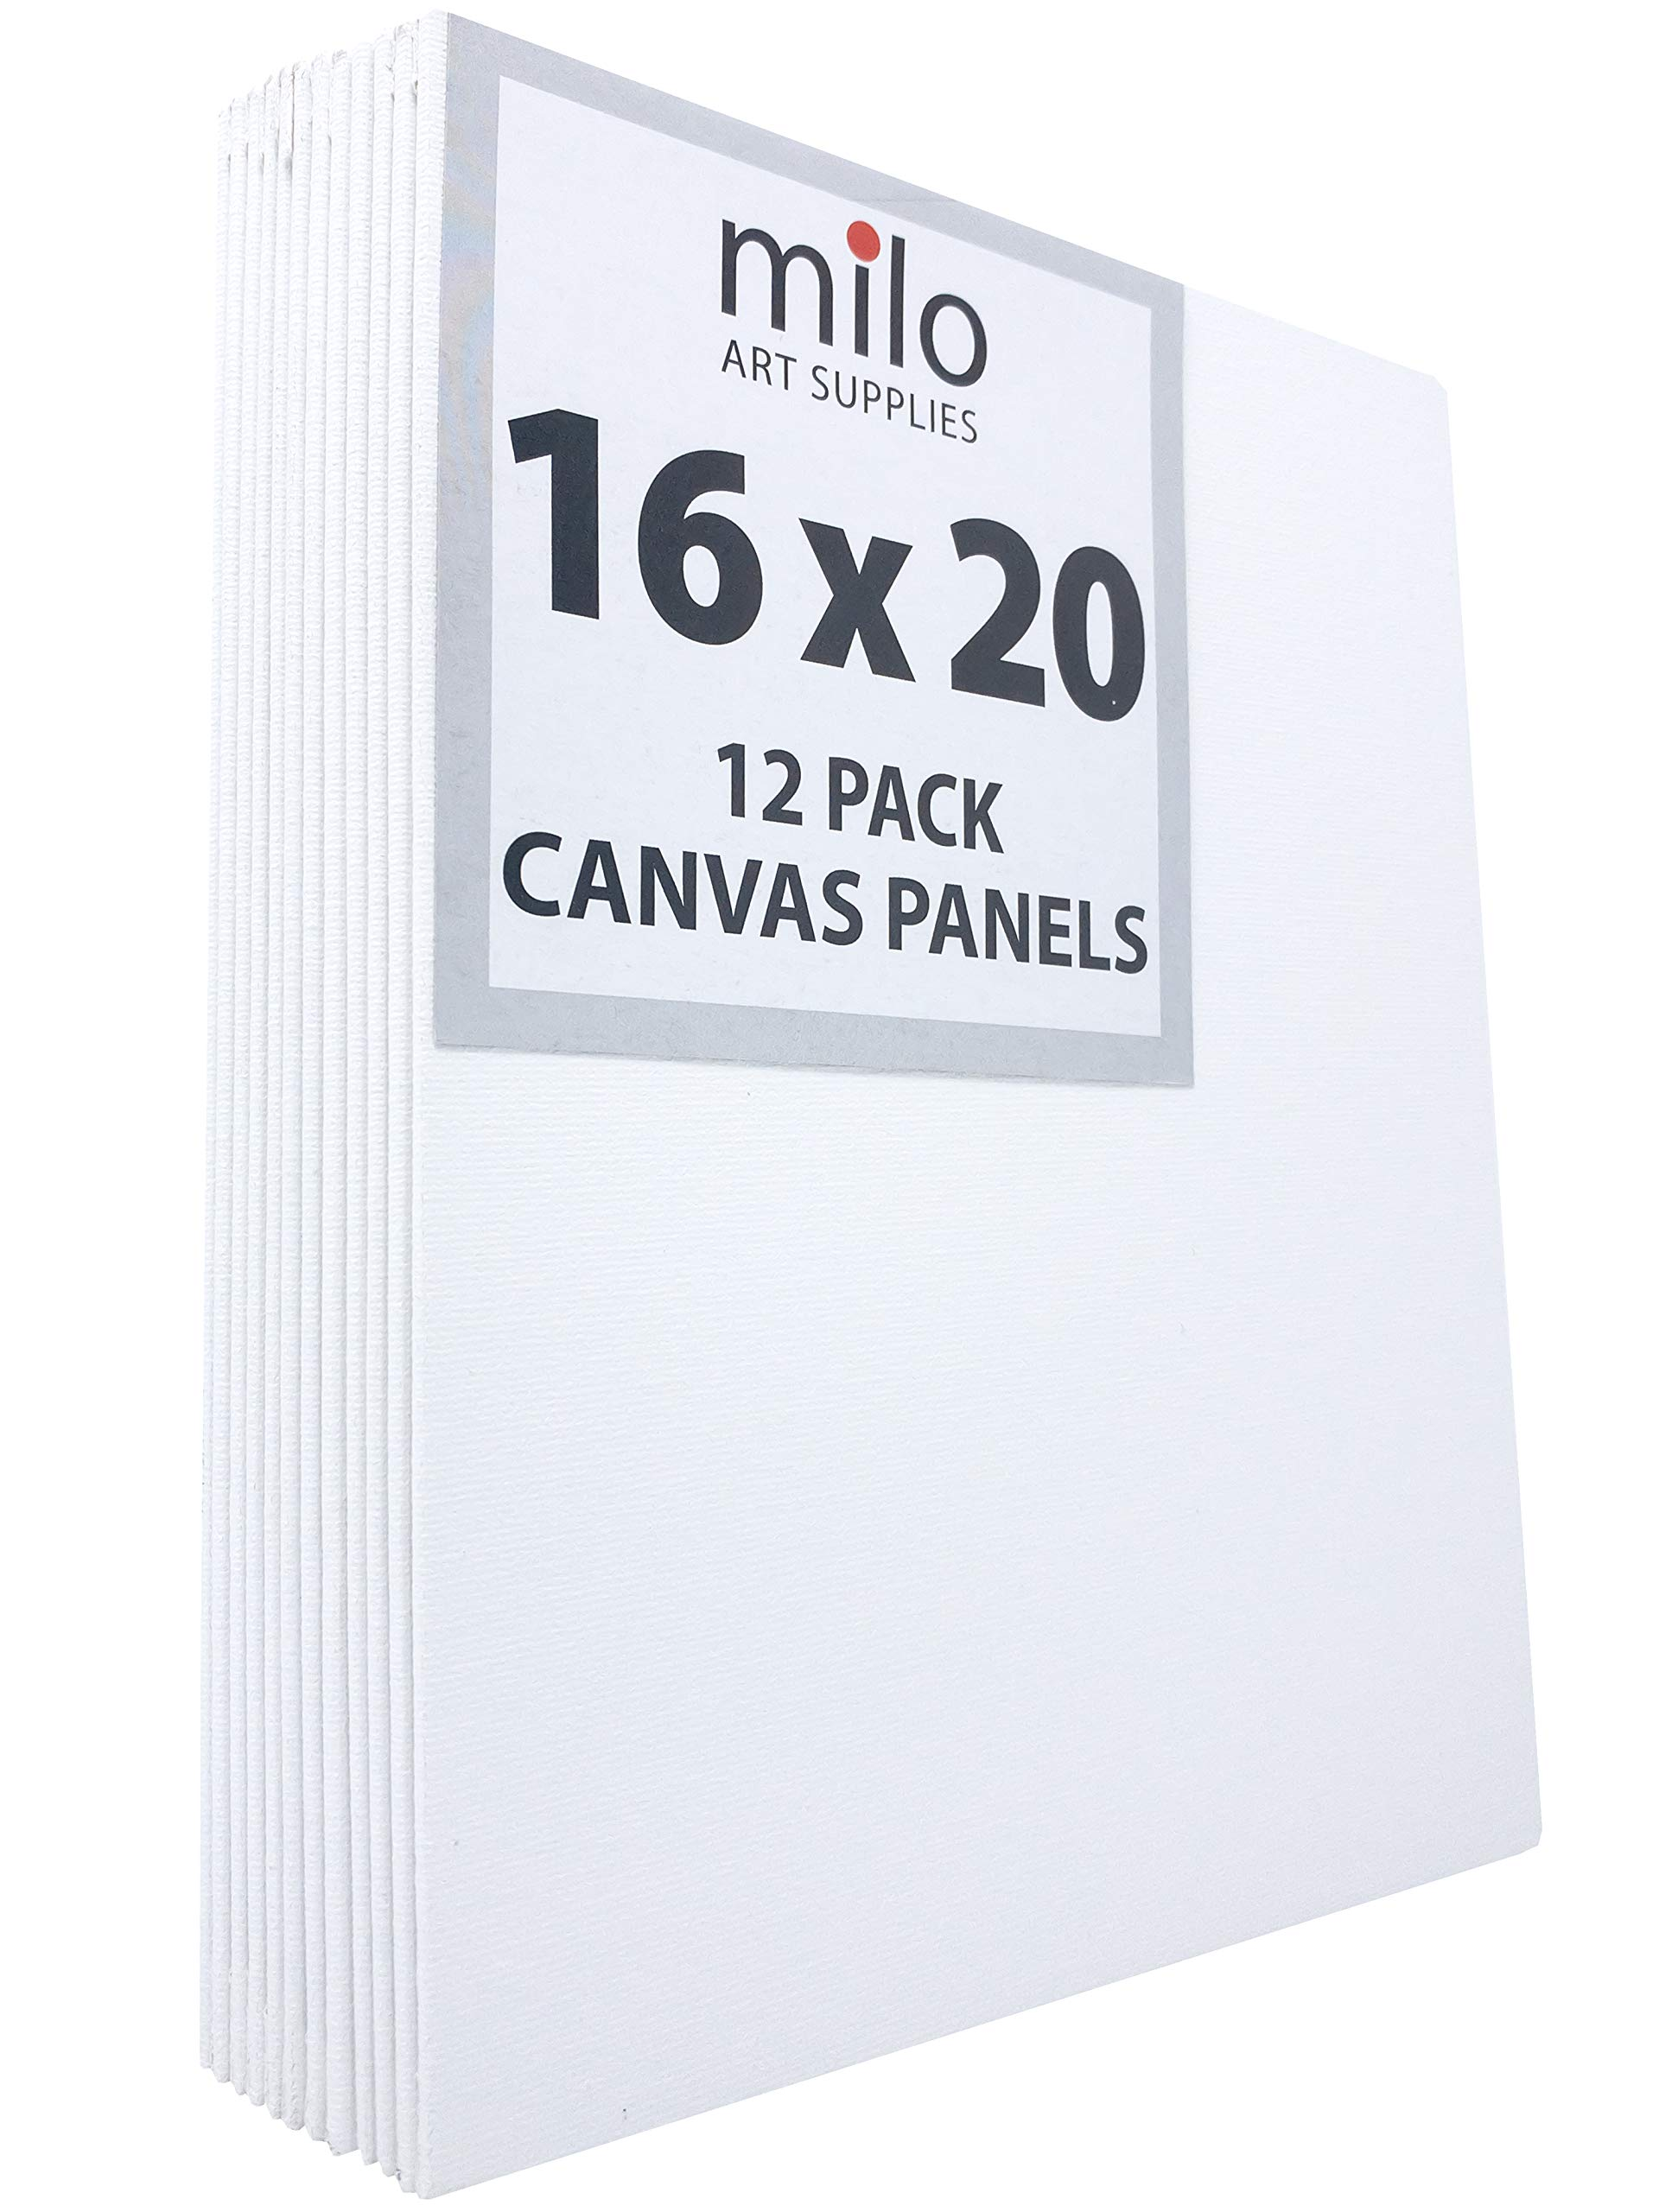 MILO | 16 x 20'' 12 Pack Canvas Panels | Bulk Set of 12 16x20 inch Canvases Panel Boards for Painting | Ready to Paint Art Supplies White Blank Artist Board by milo